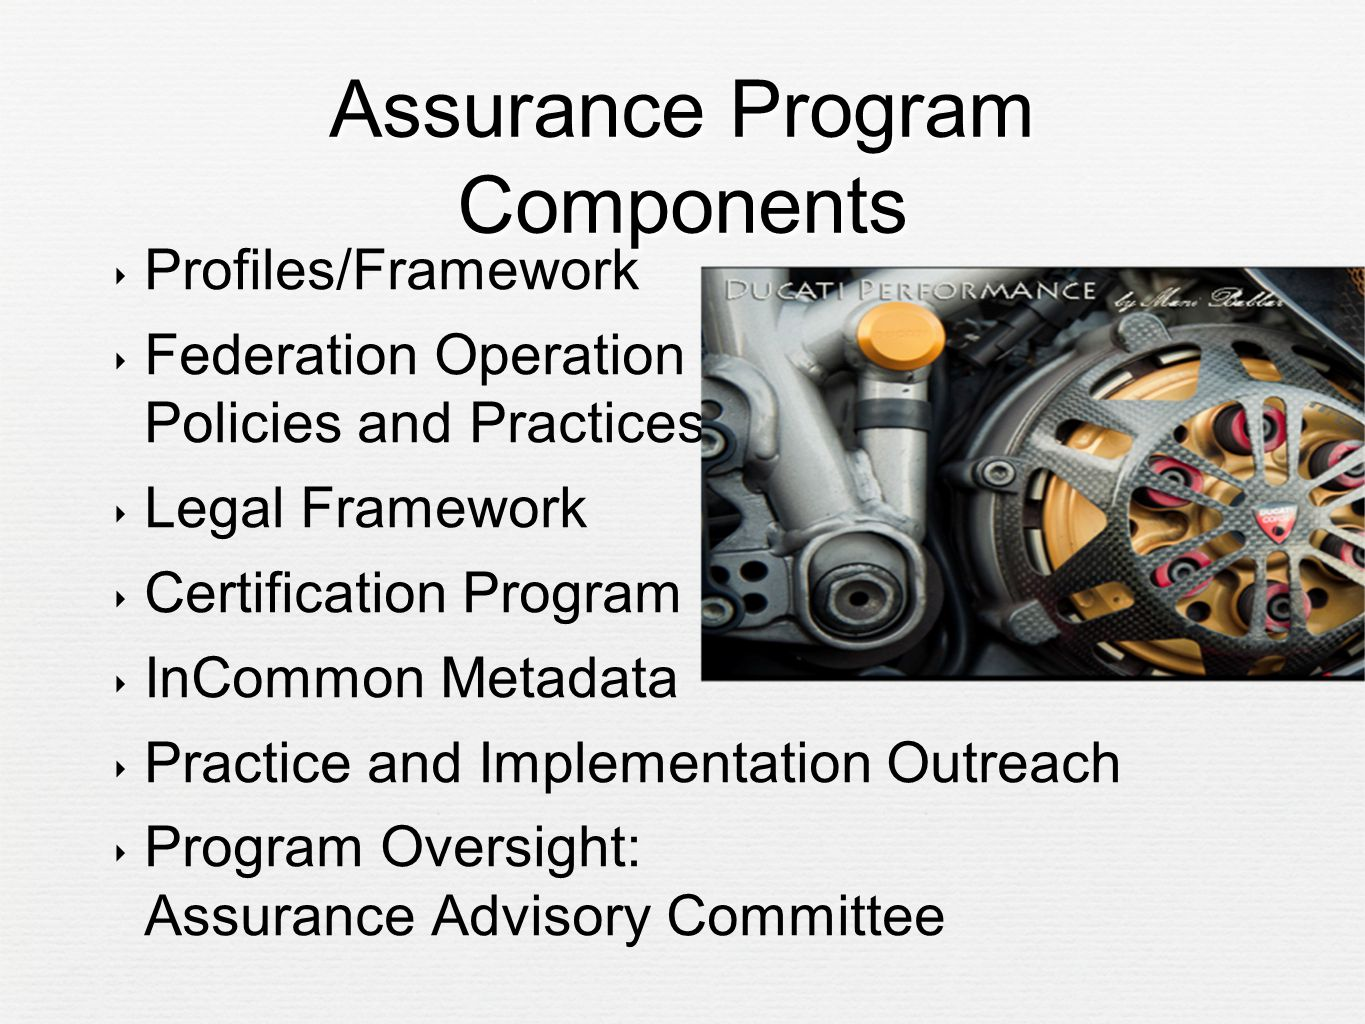 Assurance Program Components ‣ Profiles/Framework ‣ Federation Operation Policies and Practices ‣ Legal Framework ‣ Certification Program ‣ InCommon Metadata ‣ Practice and Implementation Outreach ‣ Program Oversight: Assurance Advisory Committee